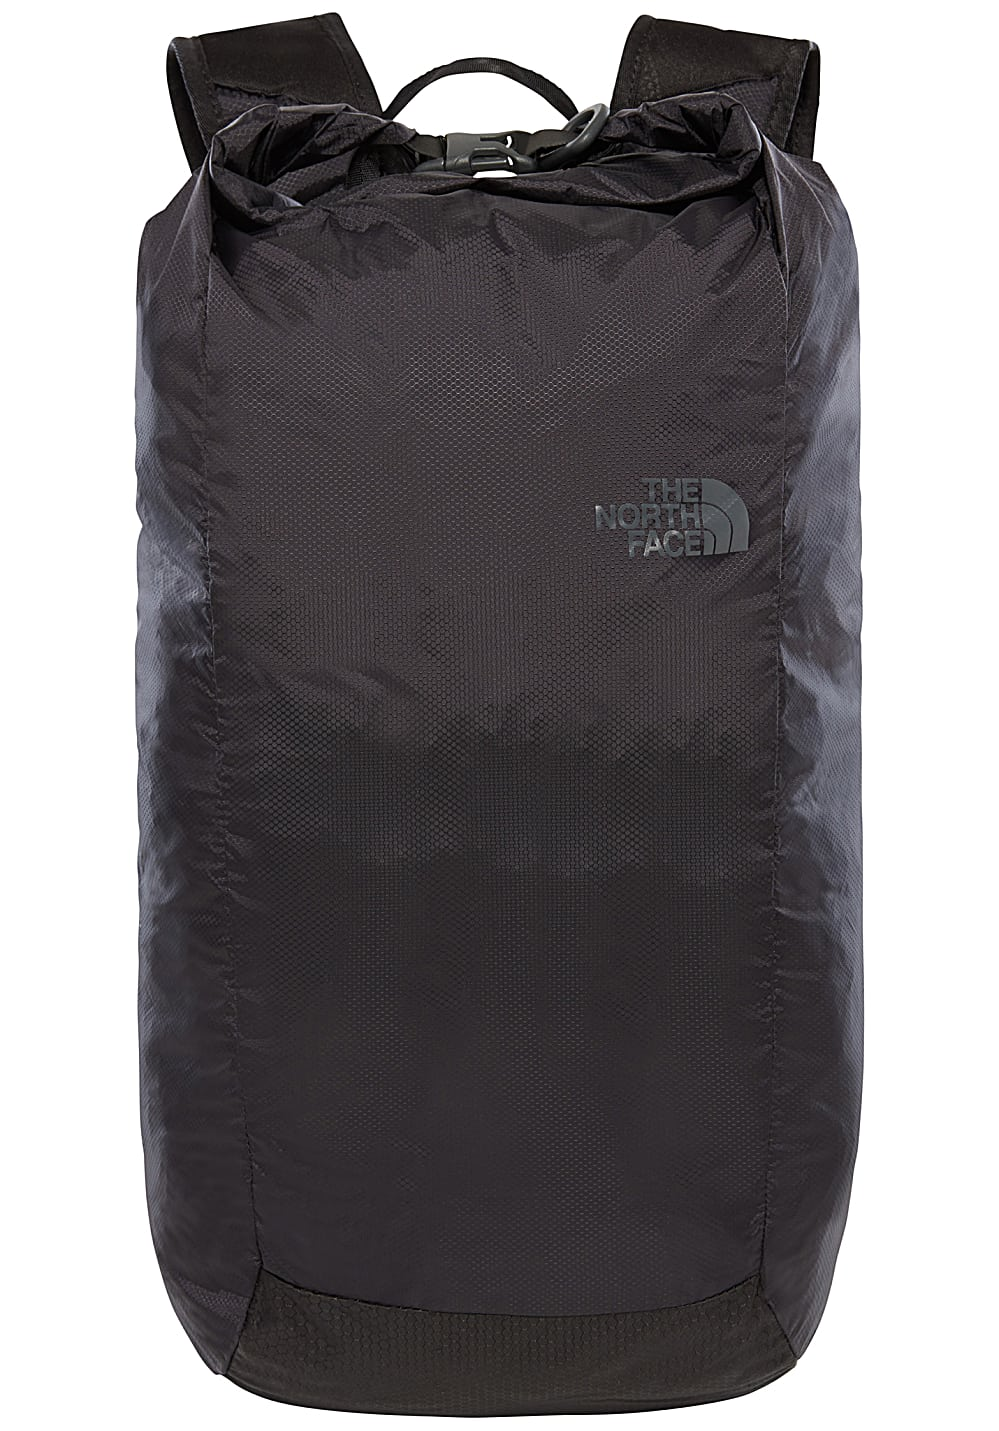 cc1484716 THE NORTH FACE Flyweight Rolltop - Backpack - Black